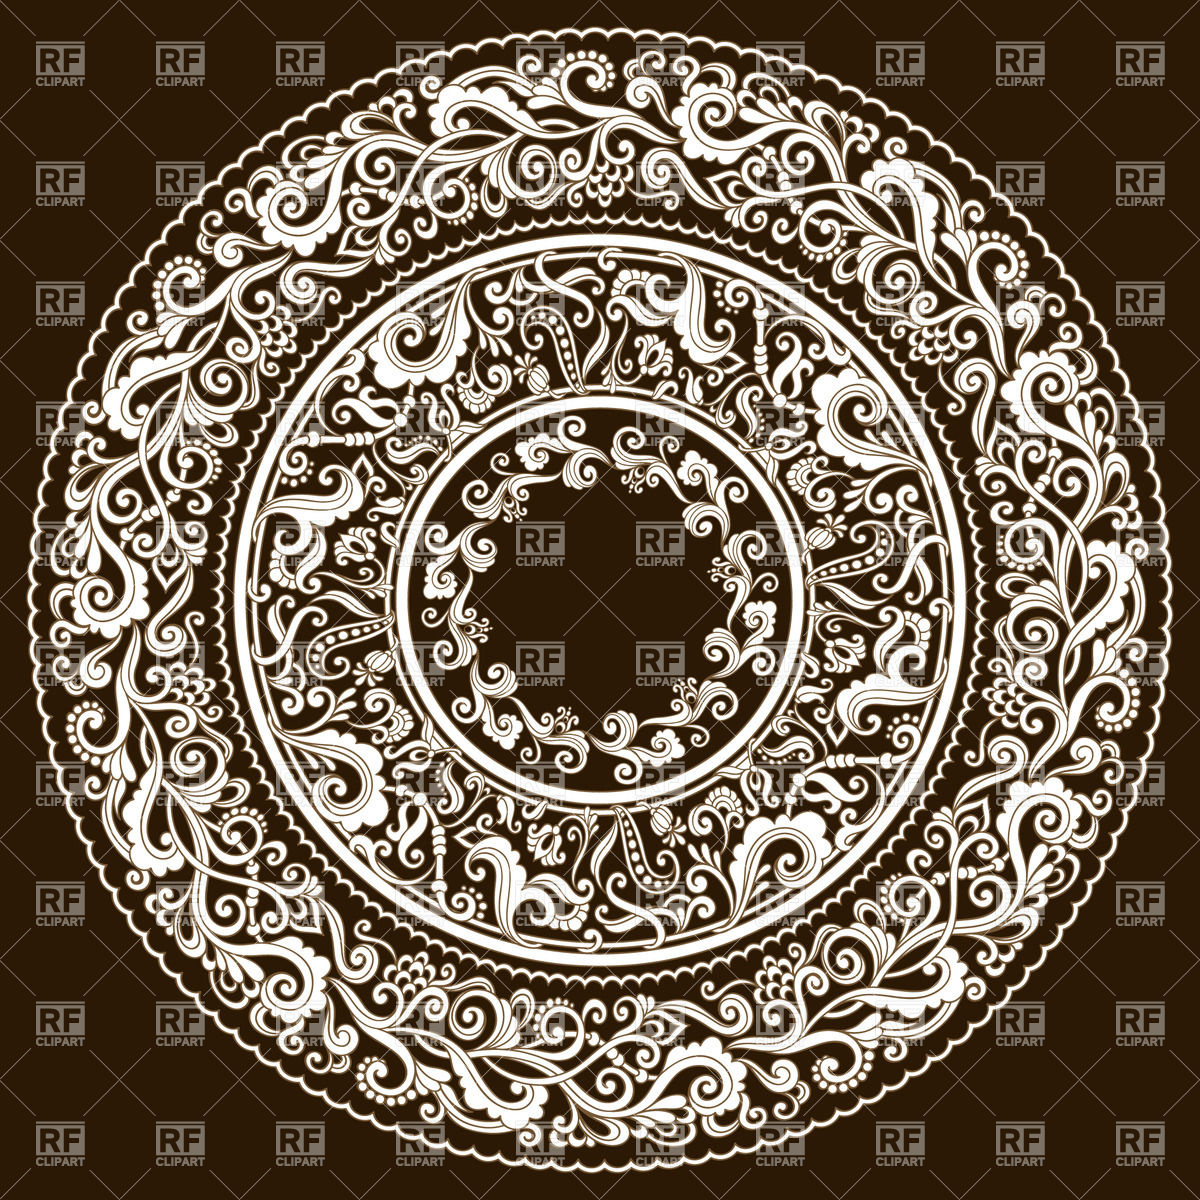 Complex floral round ornament Vector Image #29007.